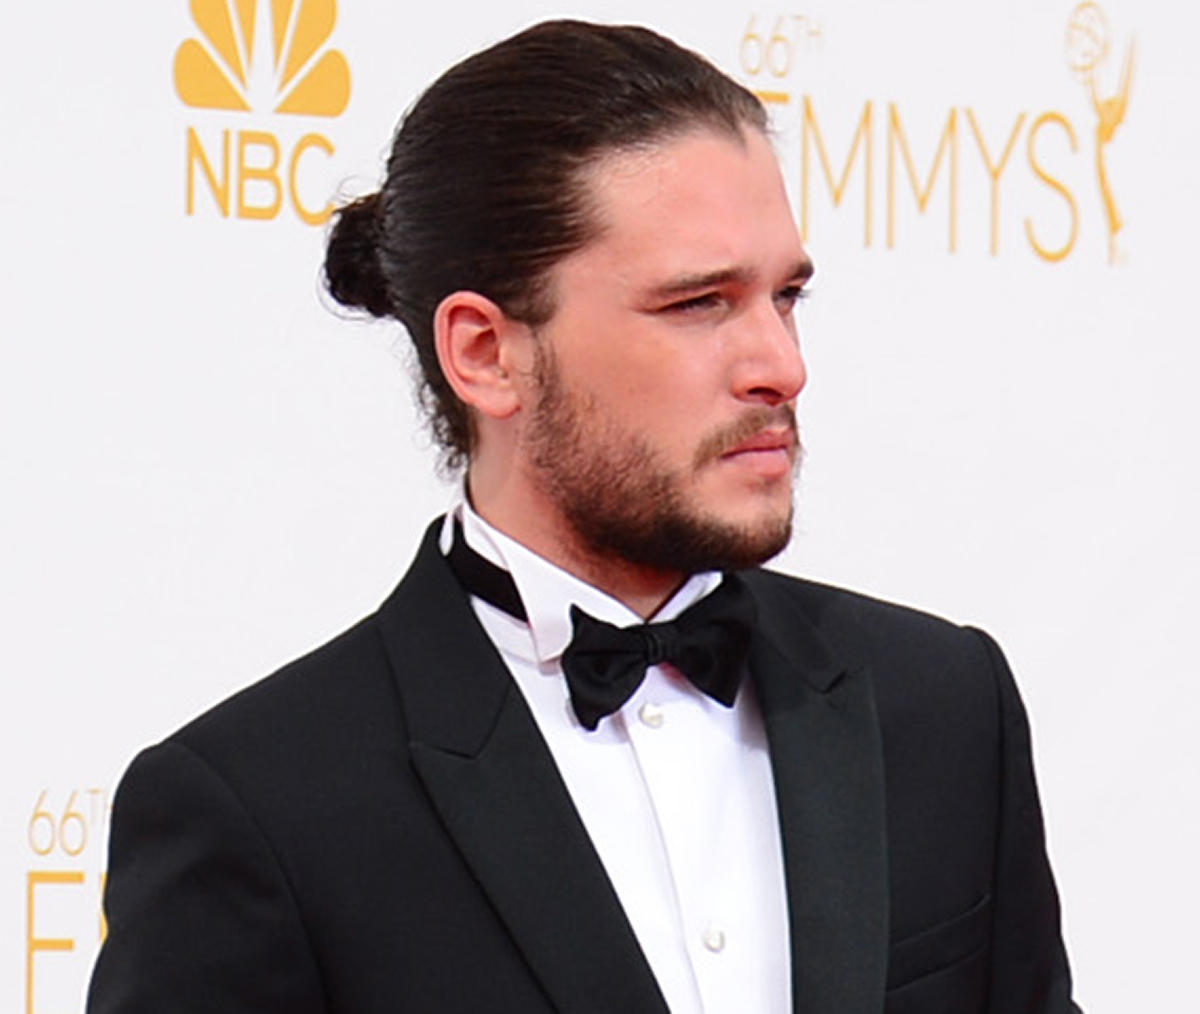 kit harington samurai bun hairstyle idea